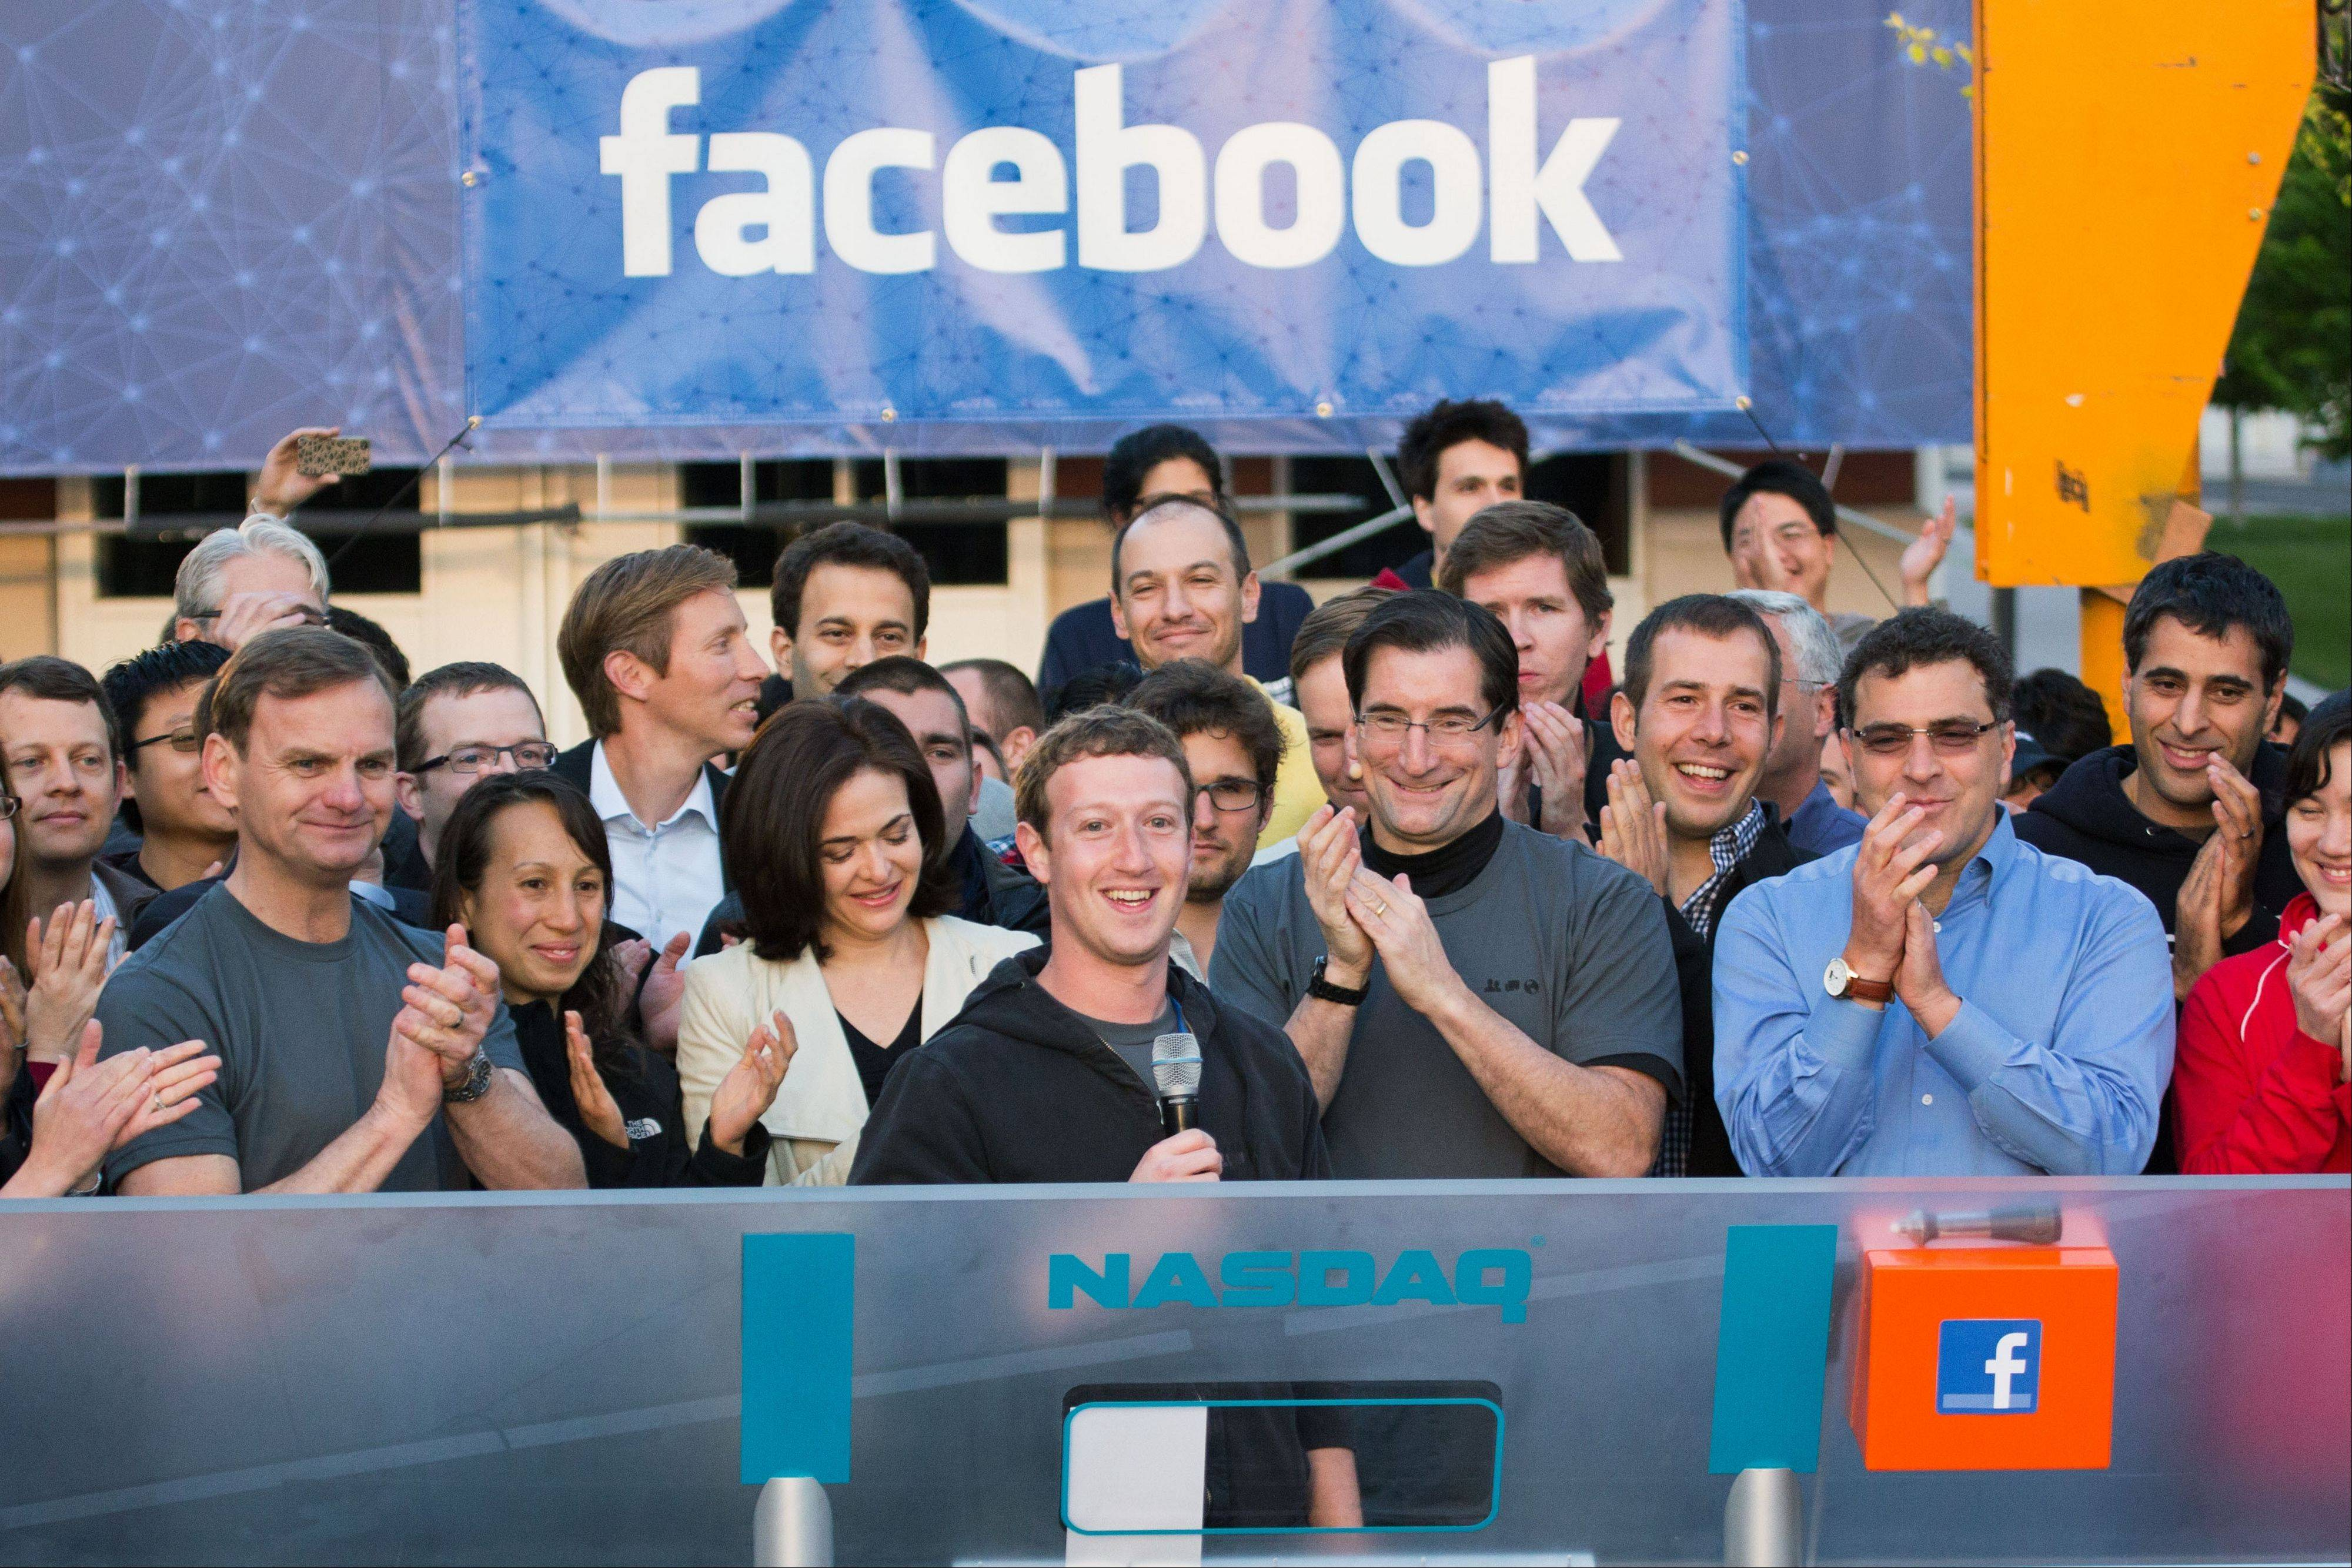 Facebook founder, Chairman and CEO Mark Zuckerberg, center, rings the opening bell of the Nasdaq stock market a year ago, from Facebook headquarters in Menlo Park, Calif.